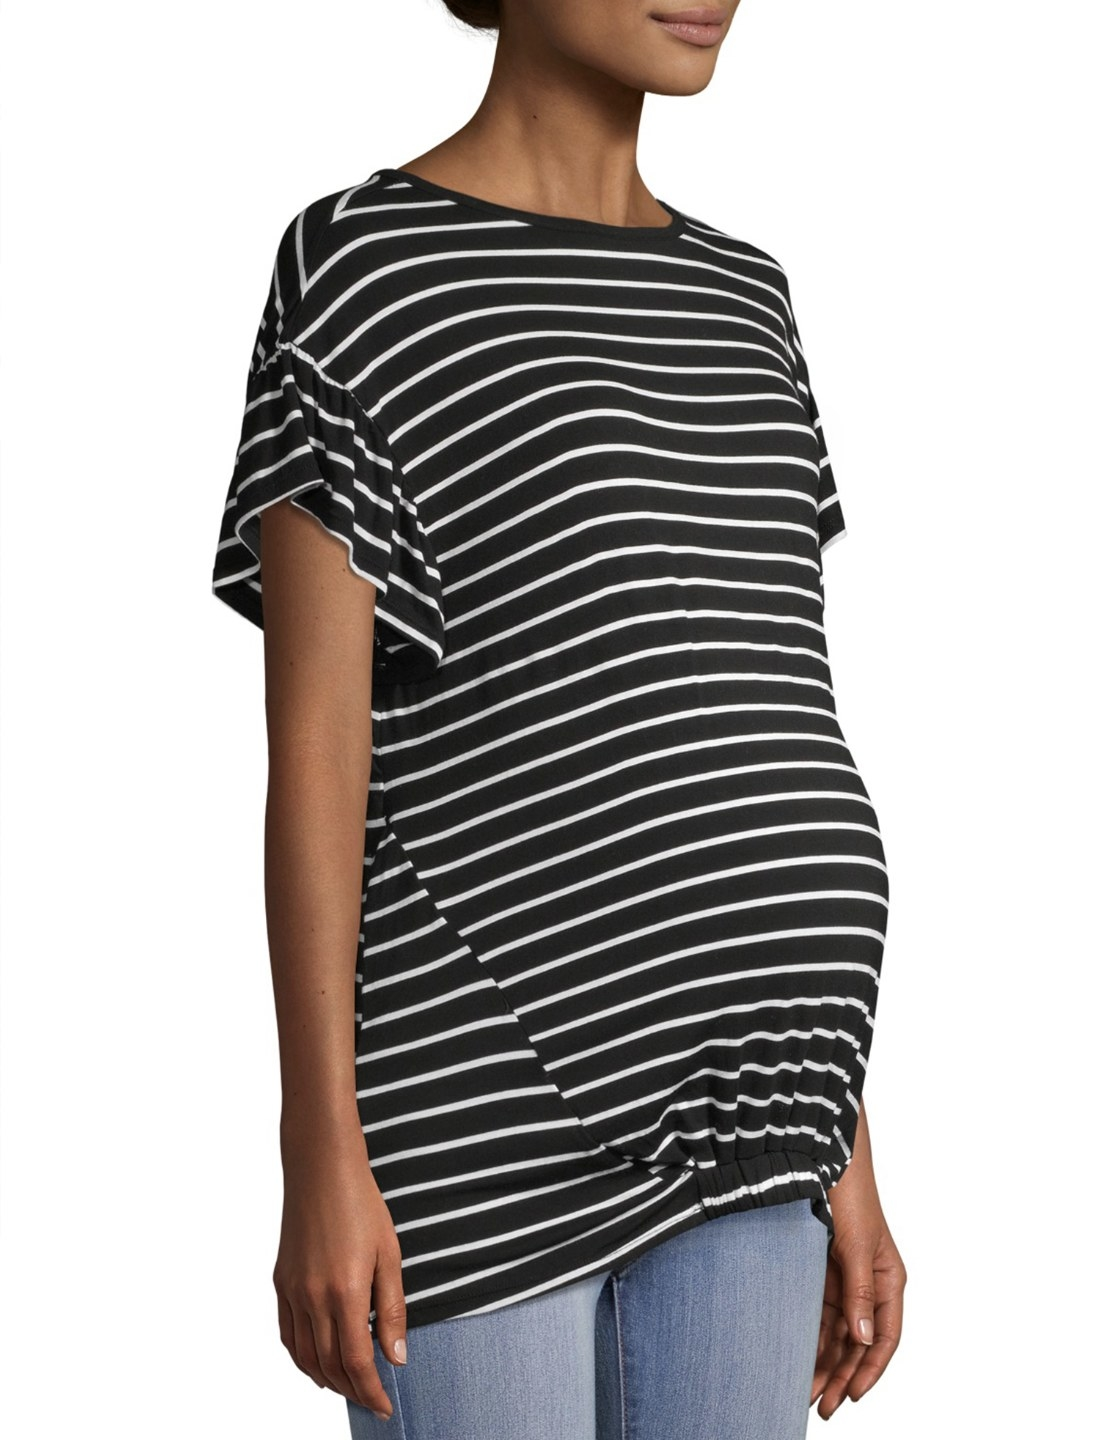 Pregnant model in the black and white maternity T-shirt